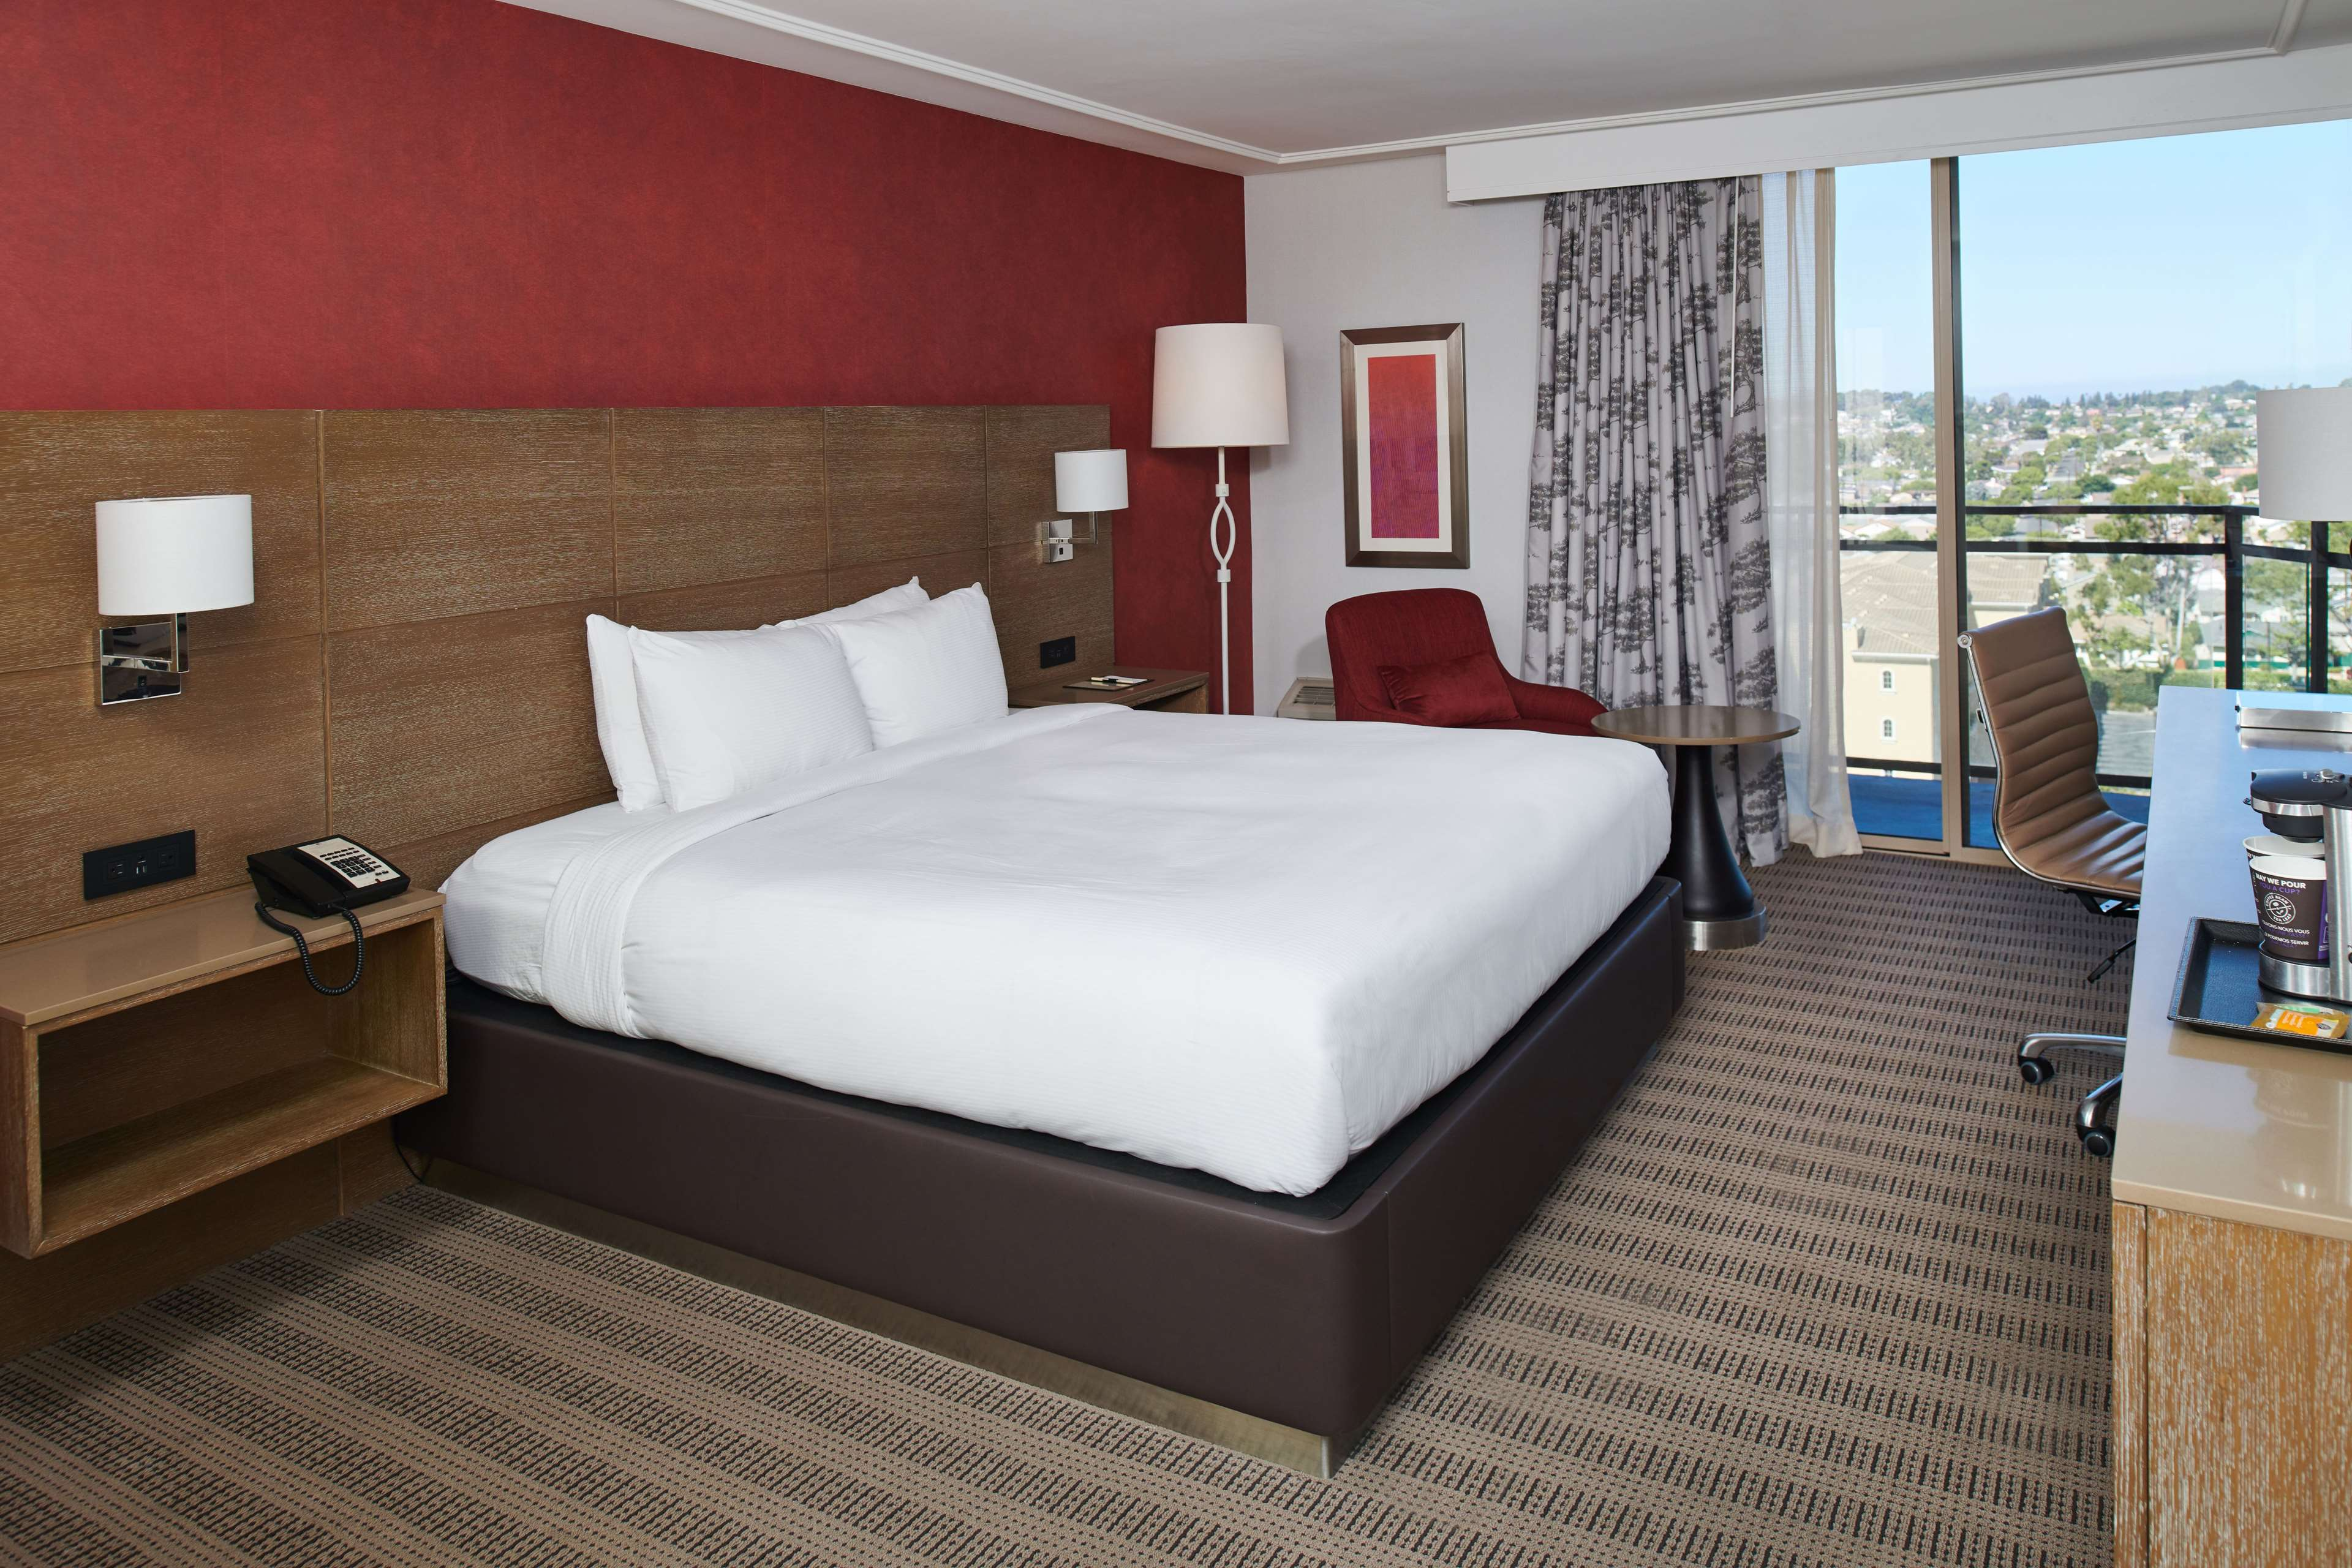 DoubleTree by Hilton Hotel Torrance - South Bay image 25